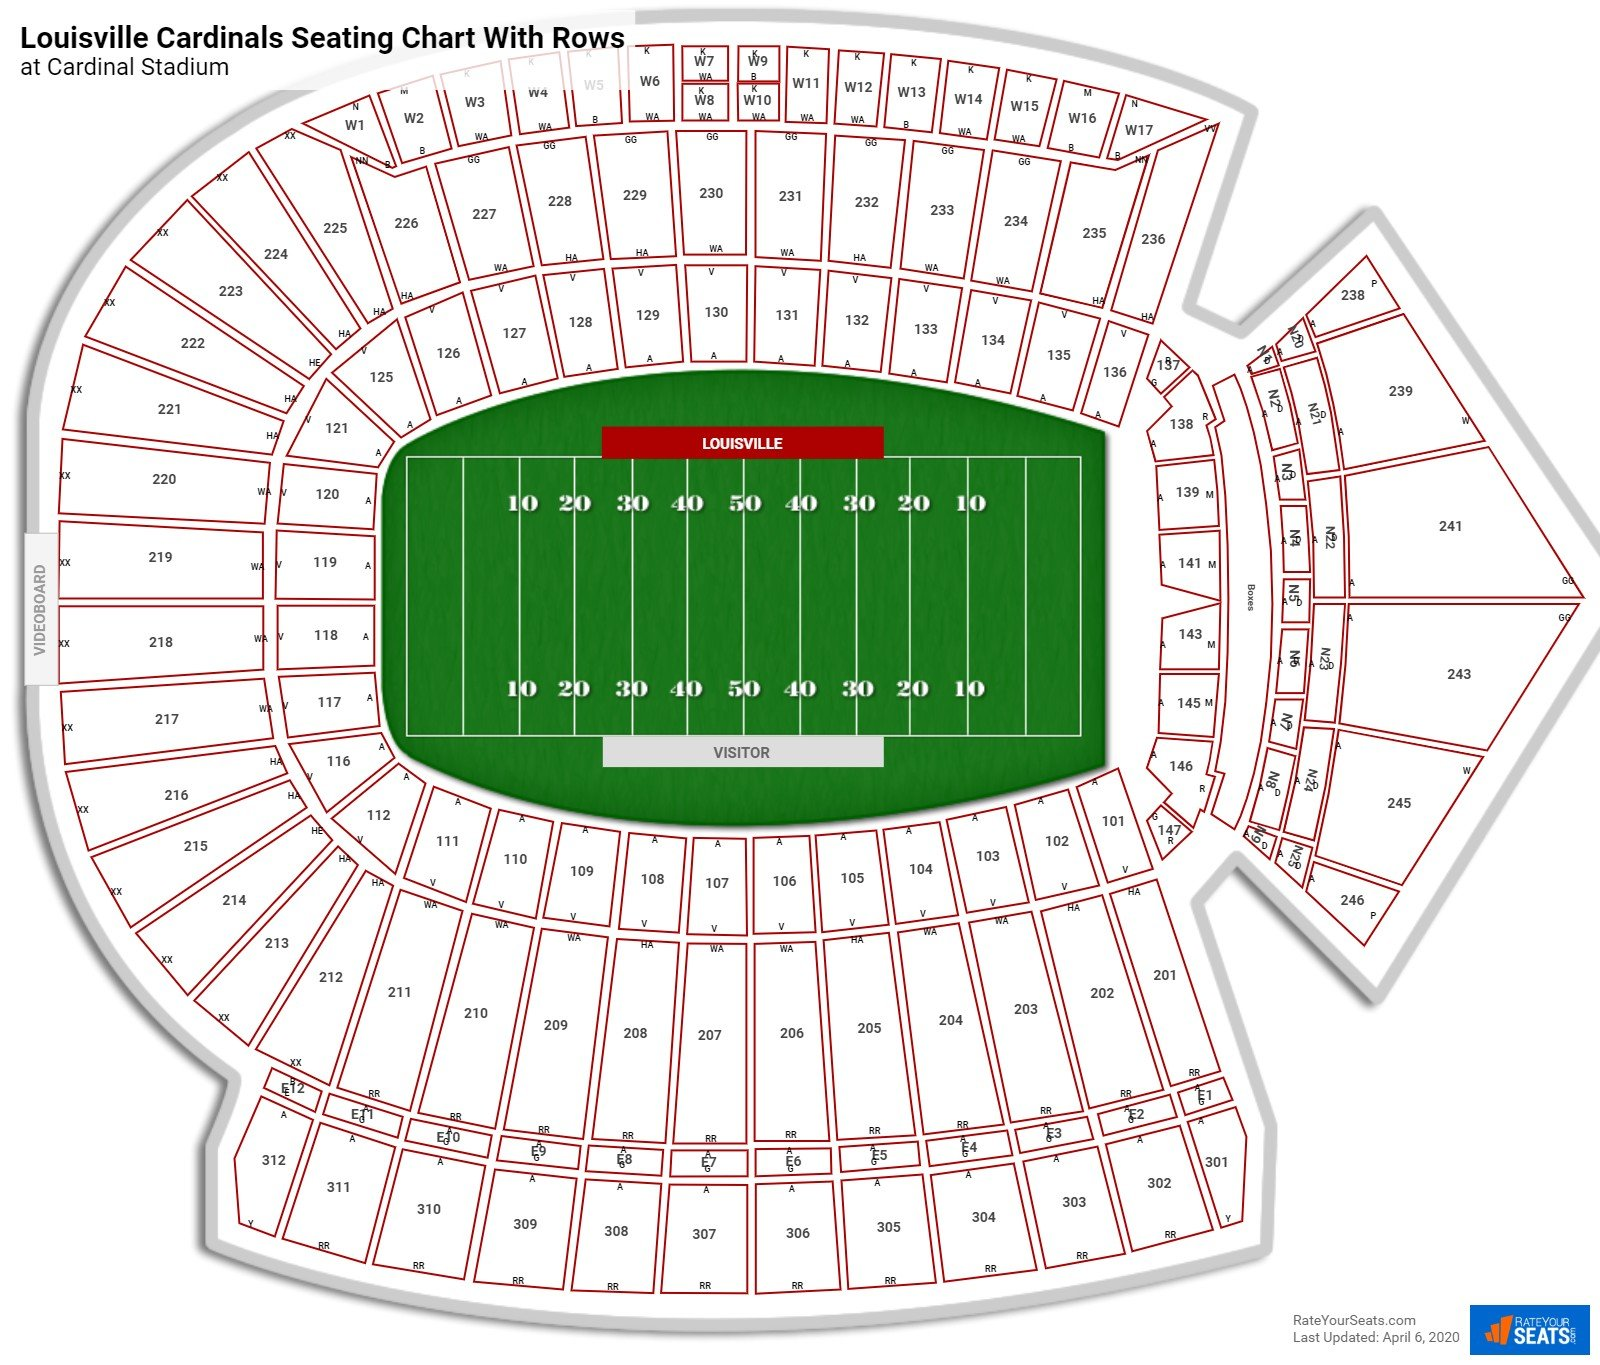 Cardinal Stadium seating chart with rows